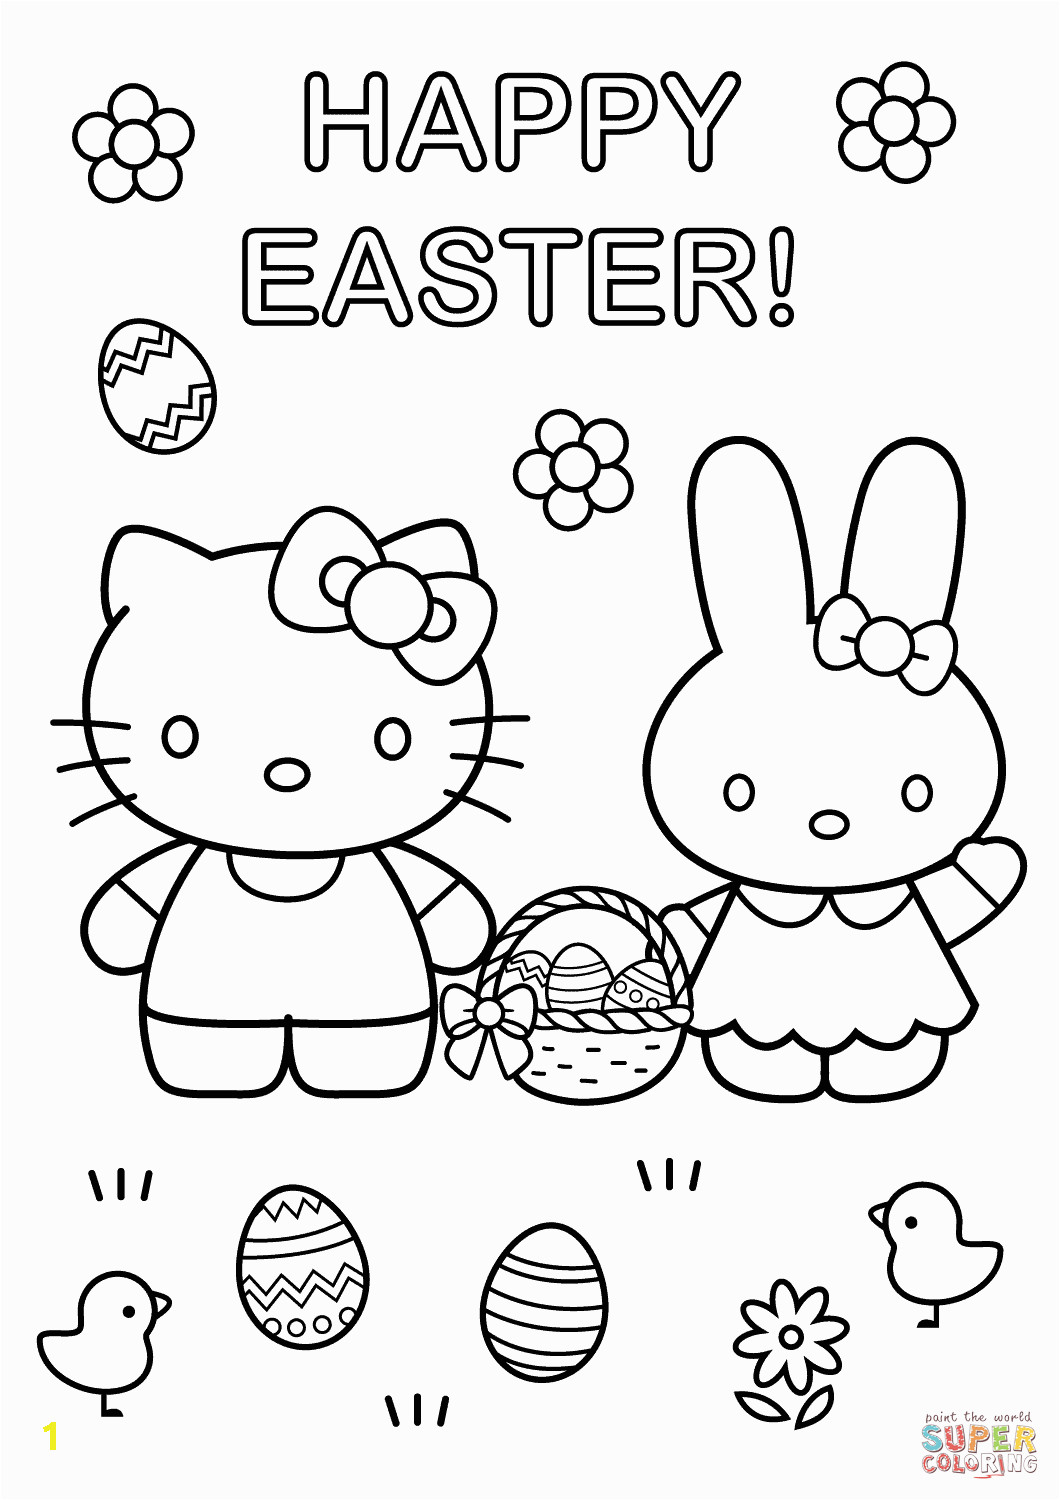 Easter Coloring Pages Hello Kitty Hello Kitty with Easter Bunny Coloring Page From Hello Kitty